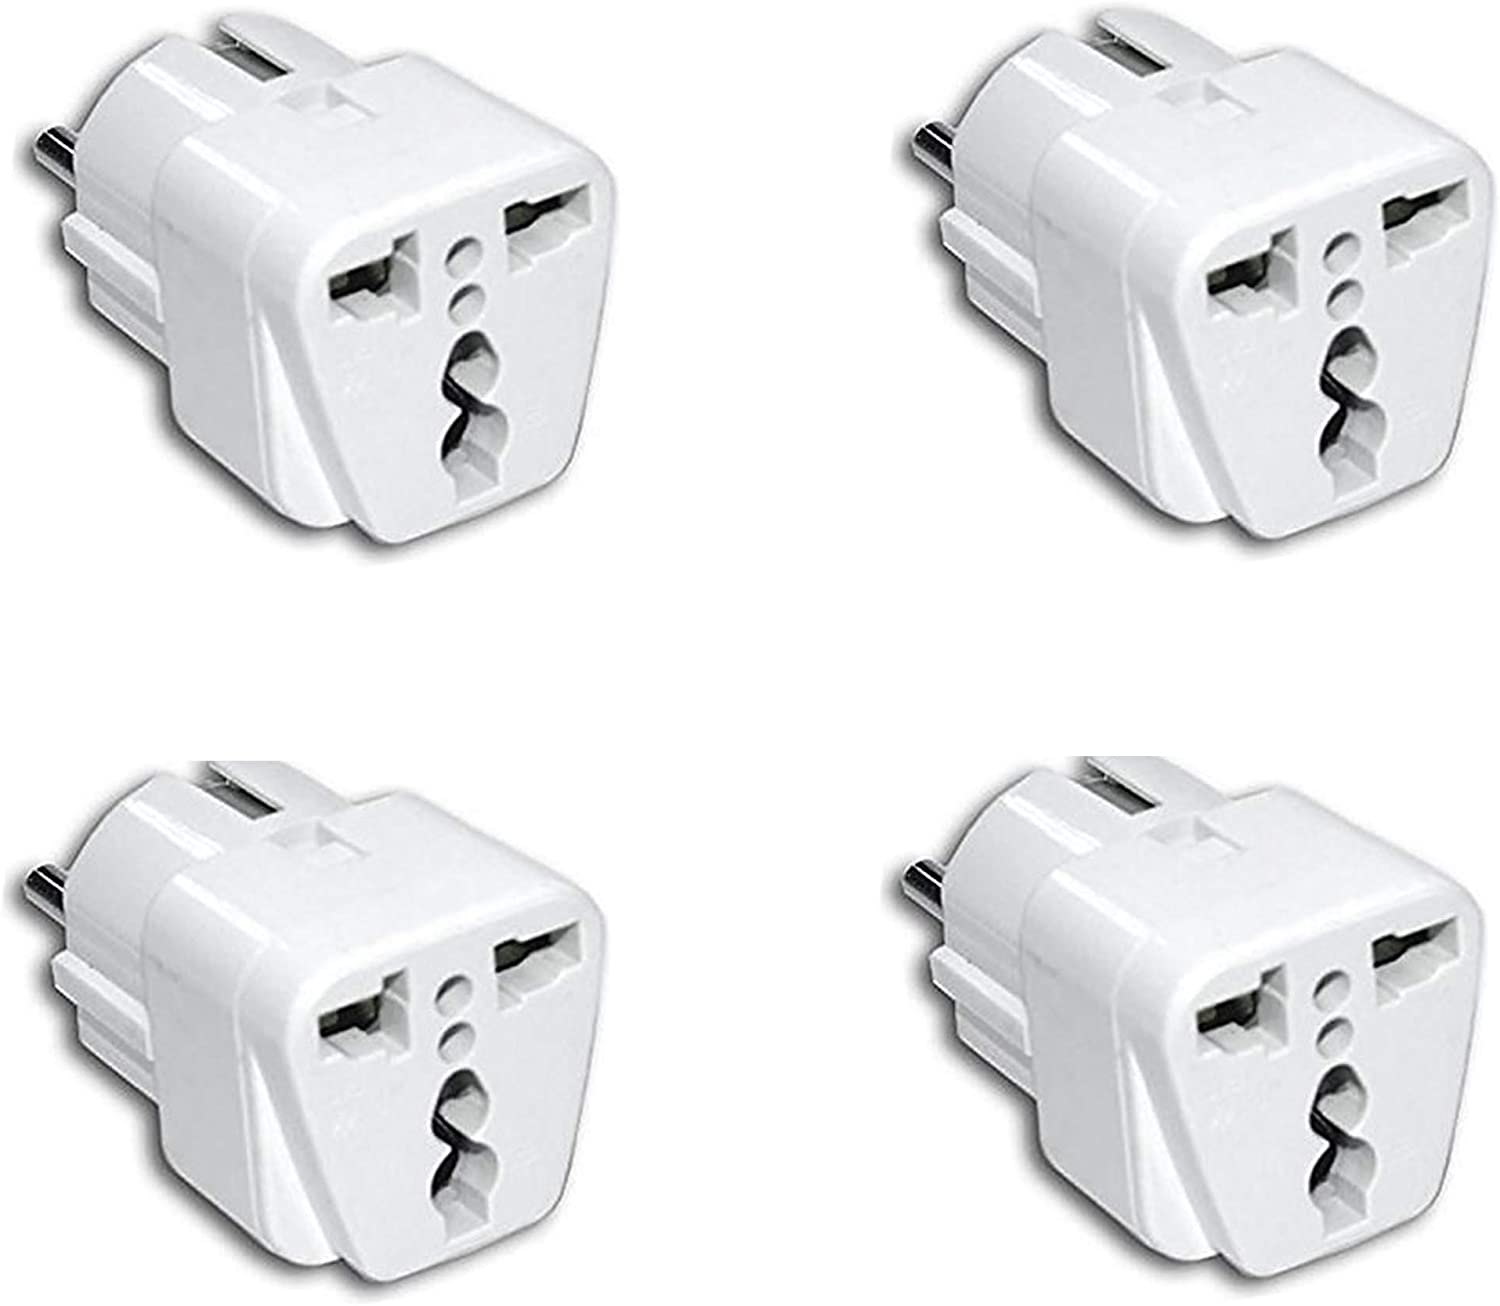 4 Unidades Adaptador Enchufe Chino o Americano a Salida Enchufe Europeo: Amazon.es: Electrónica